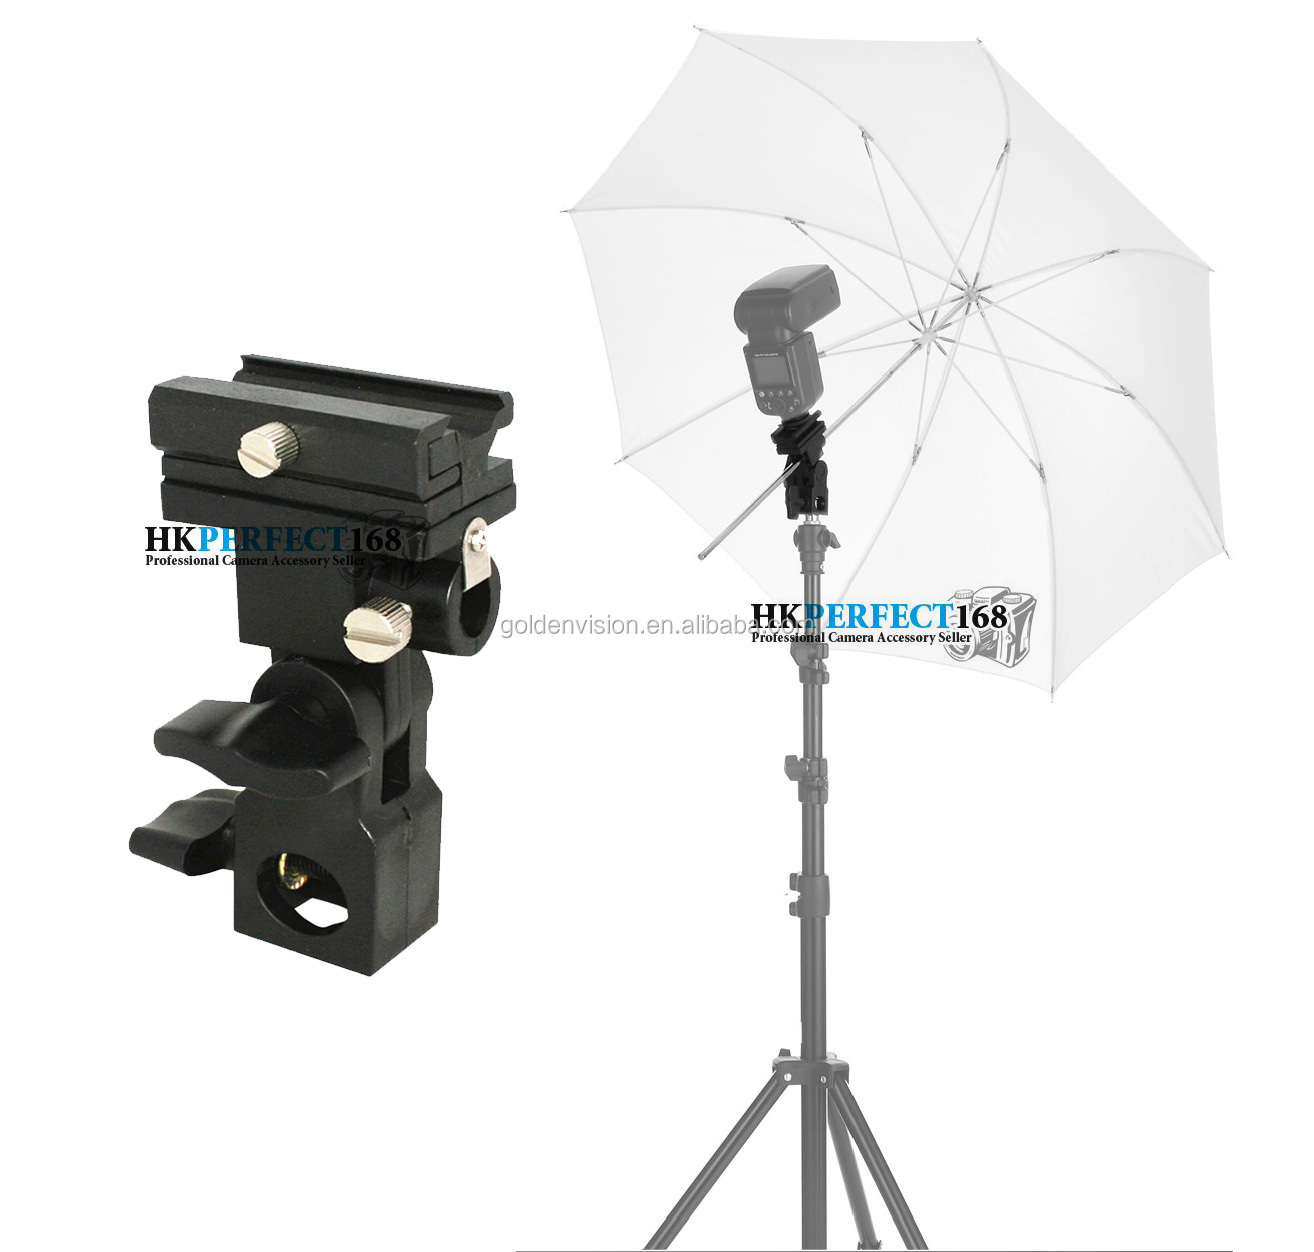 Flash Shoe Umbrella Holder Stand Bracket Kernel L Light Adjustable Mount For Dslr Camera Suppliers And Manufacturers At